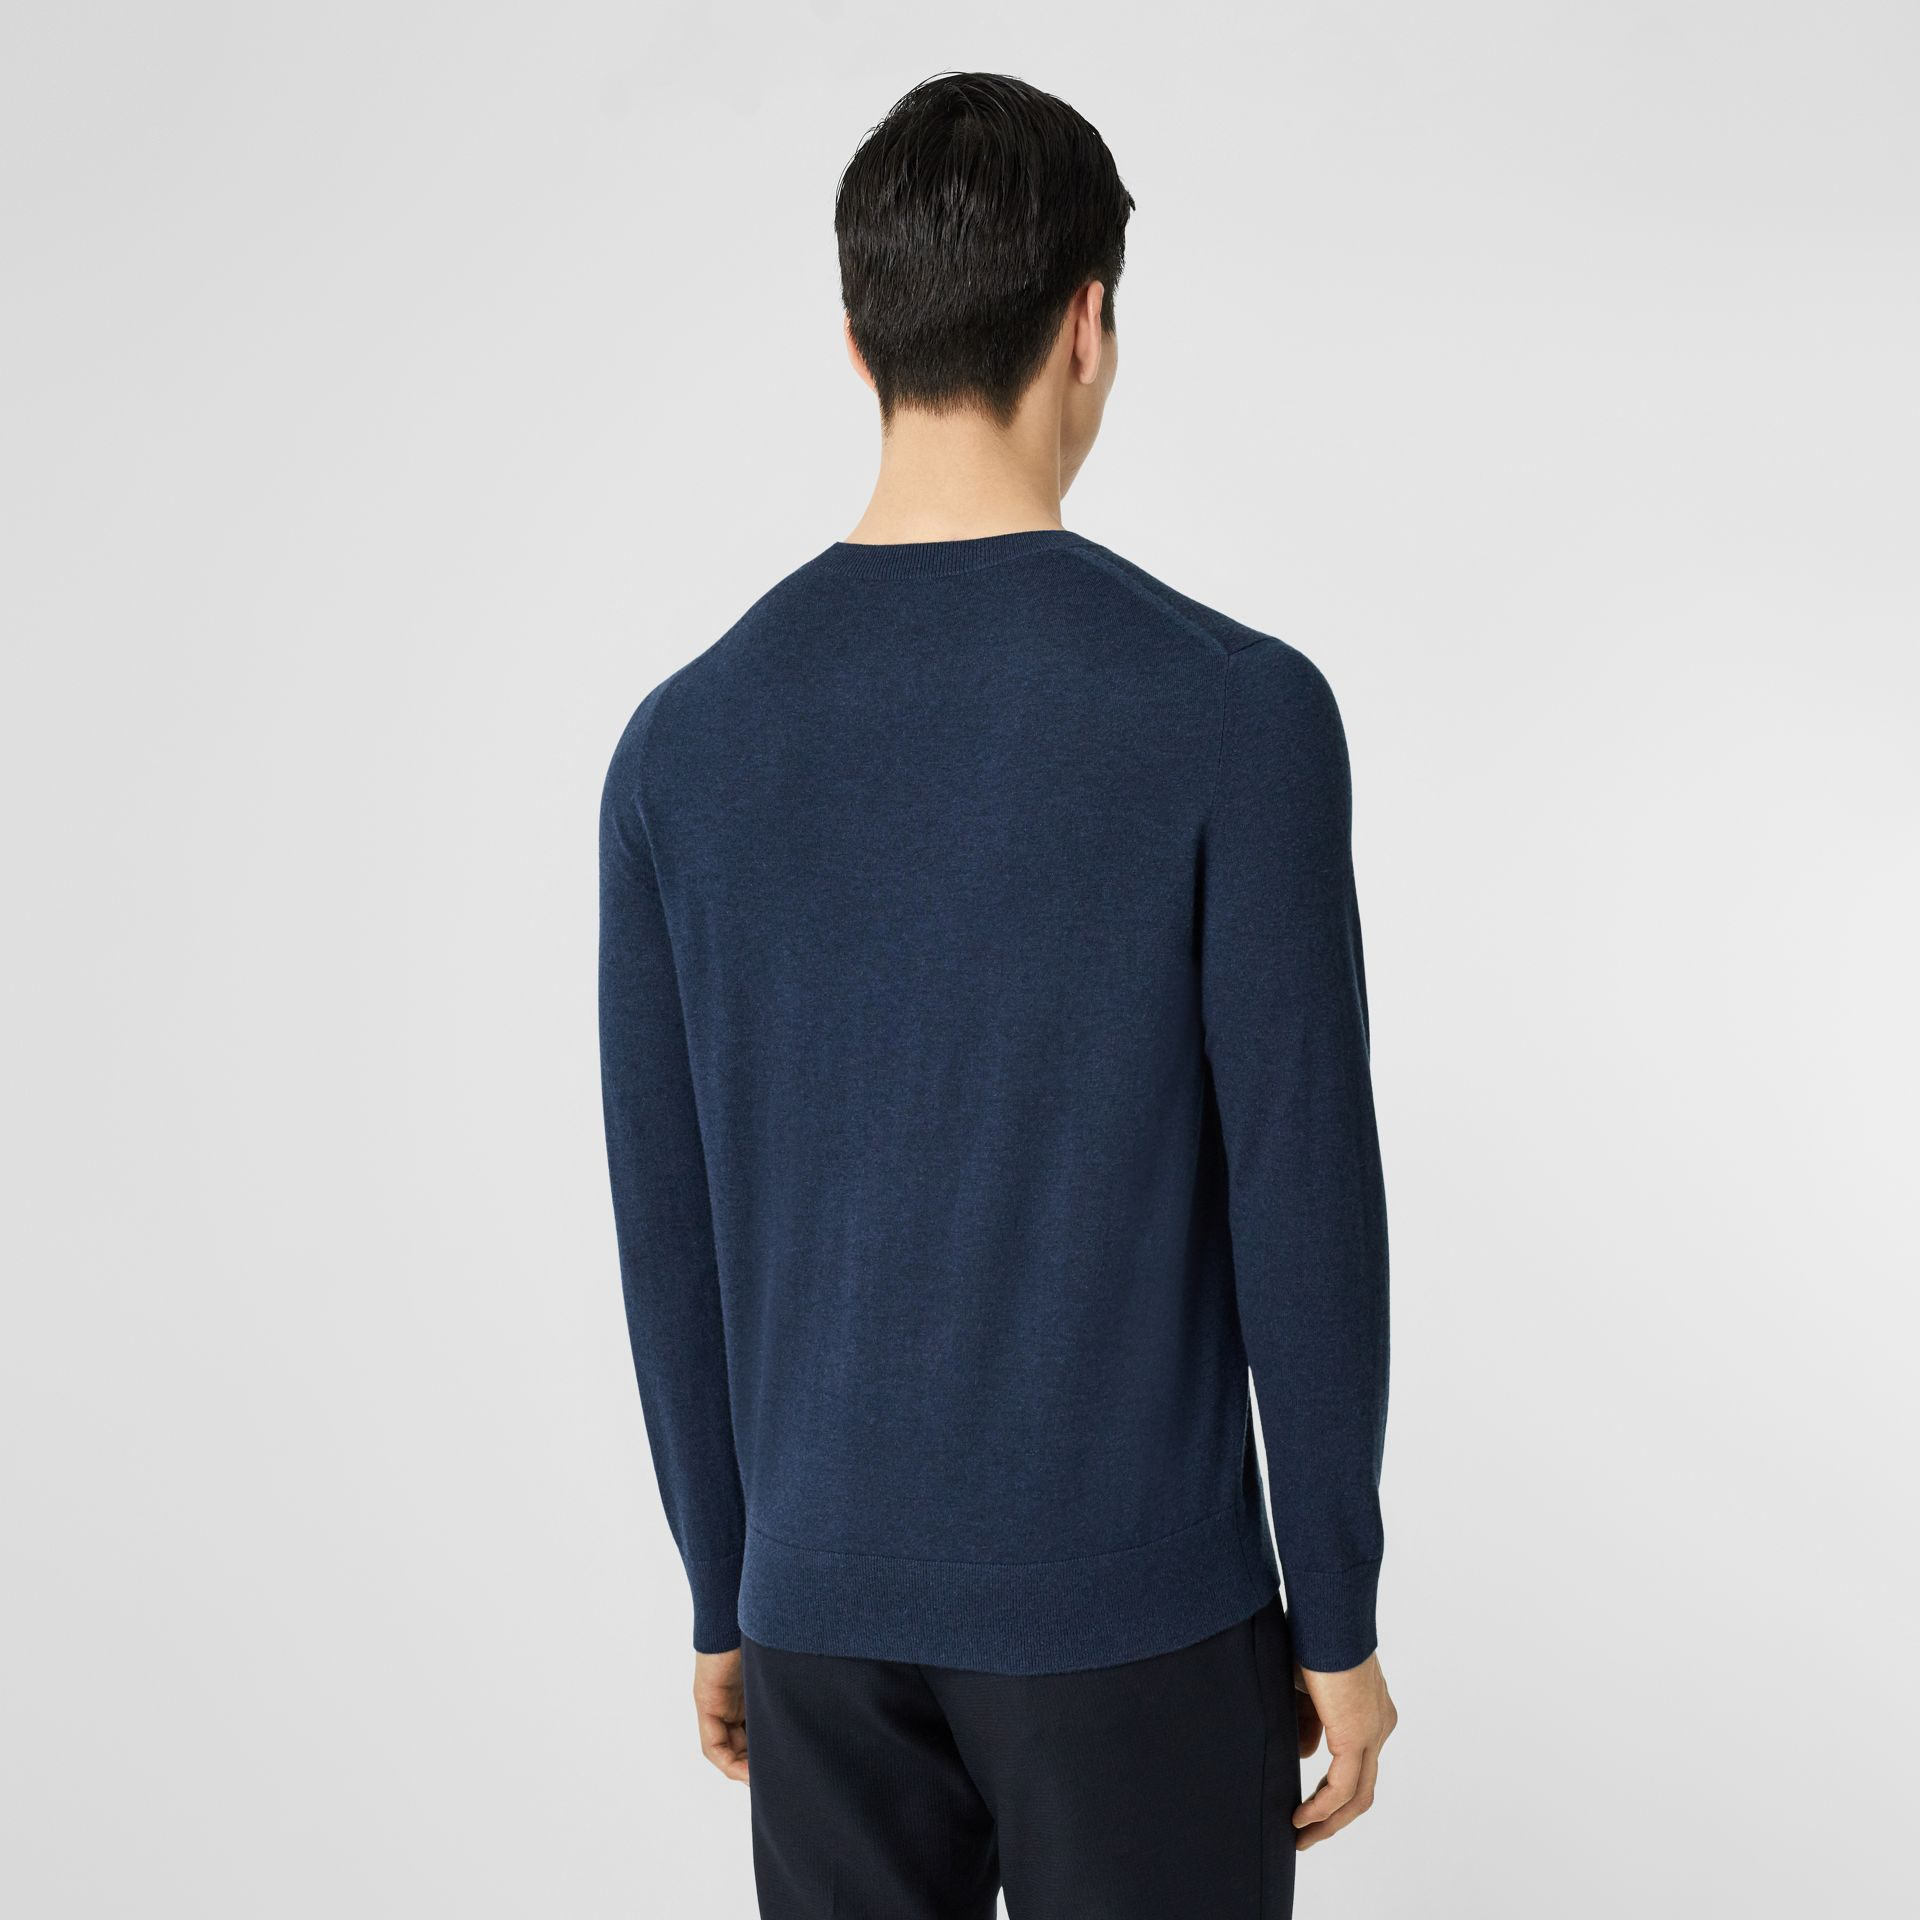 Monogram Motif Cashmere Sweater in Uniform Blue Melange - Men | Burberry - gallery image 2